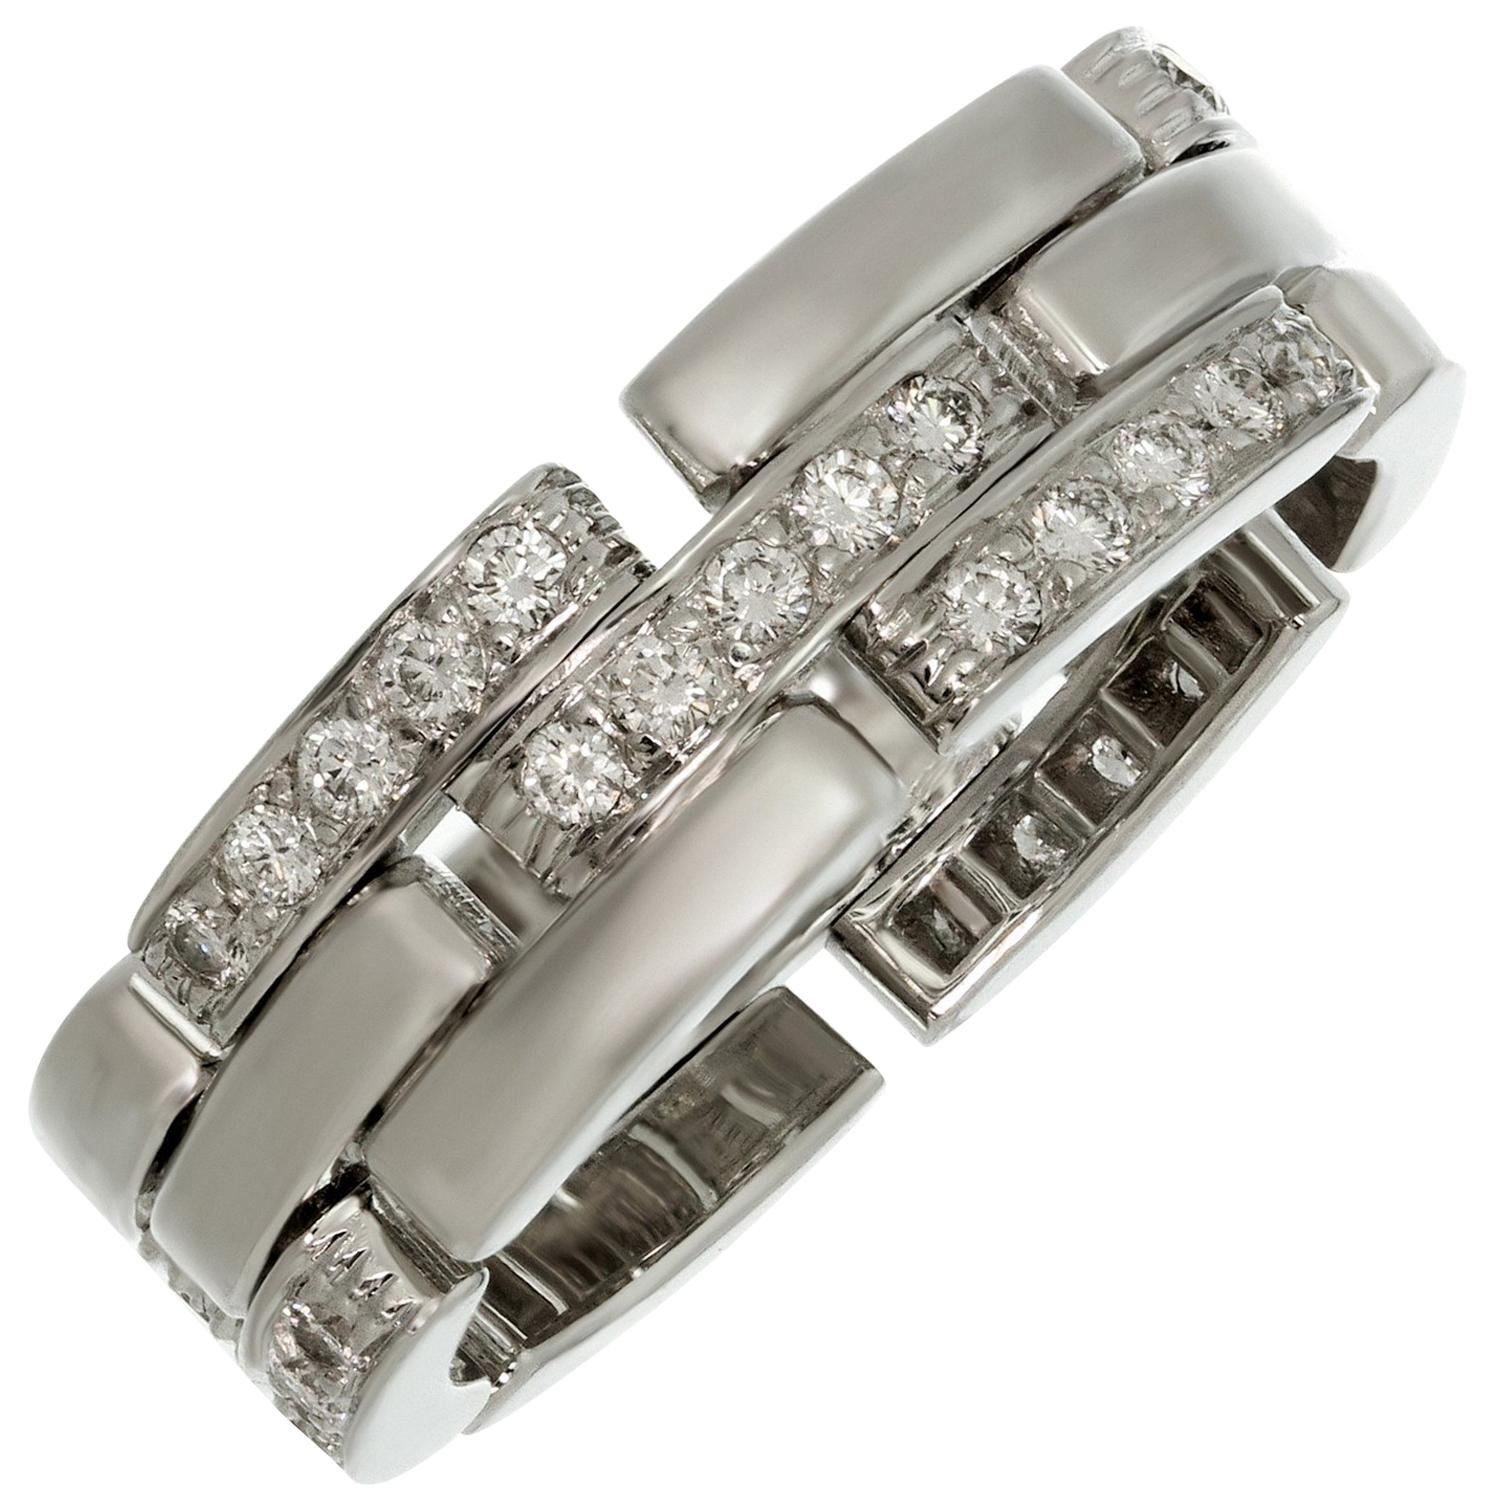 Cartier Maillon Panthère 3-Row Half-Pave Diamond White Gold Band Ring